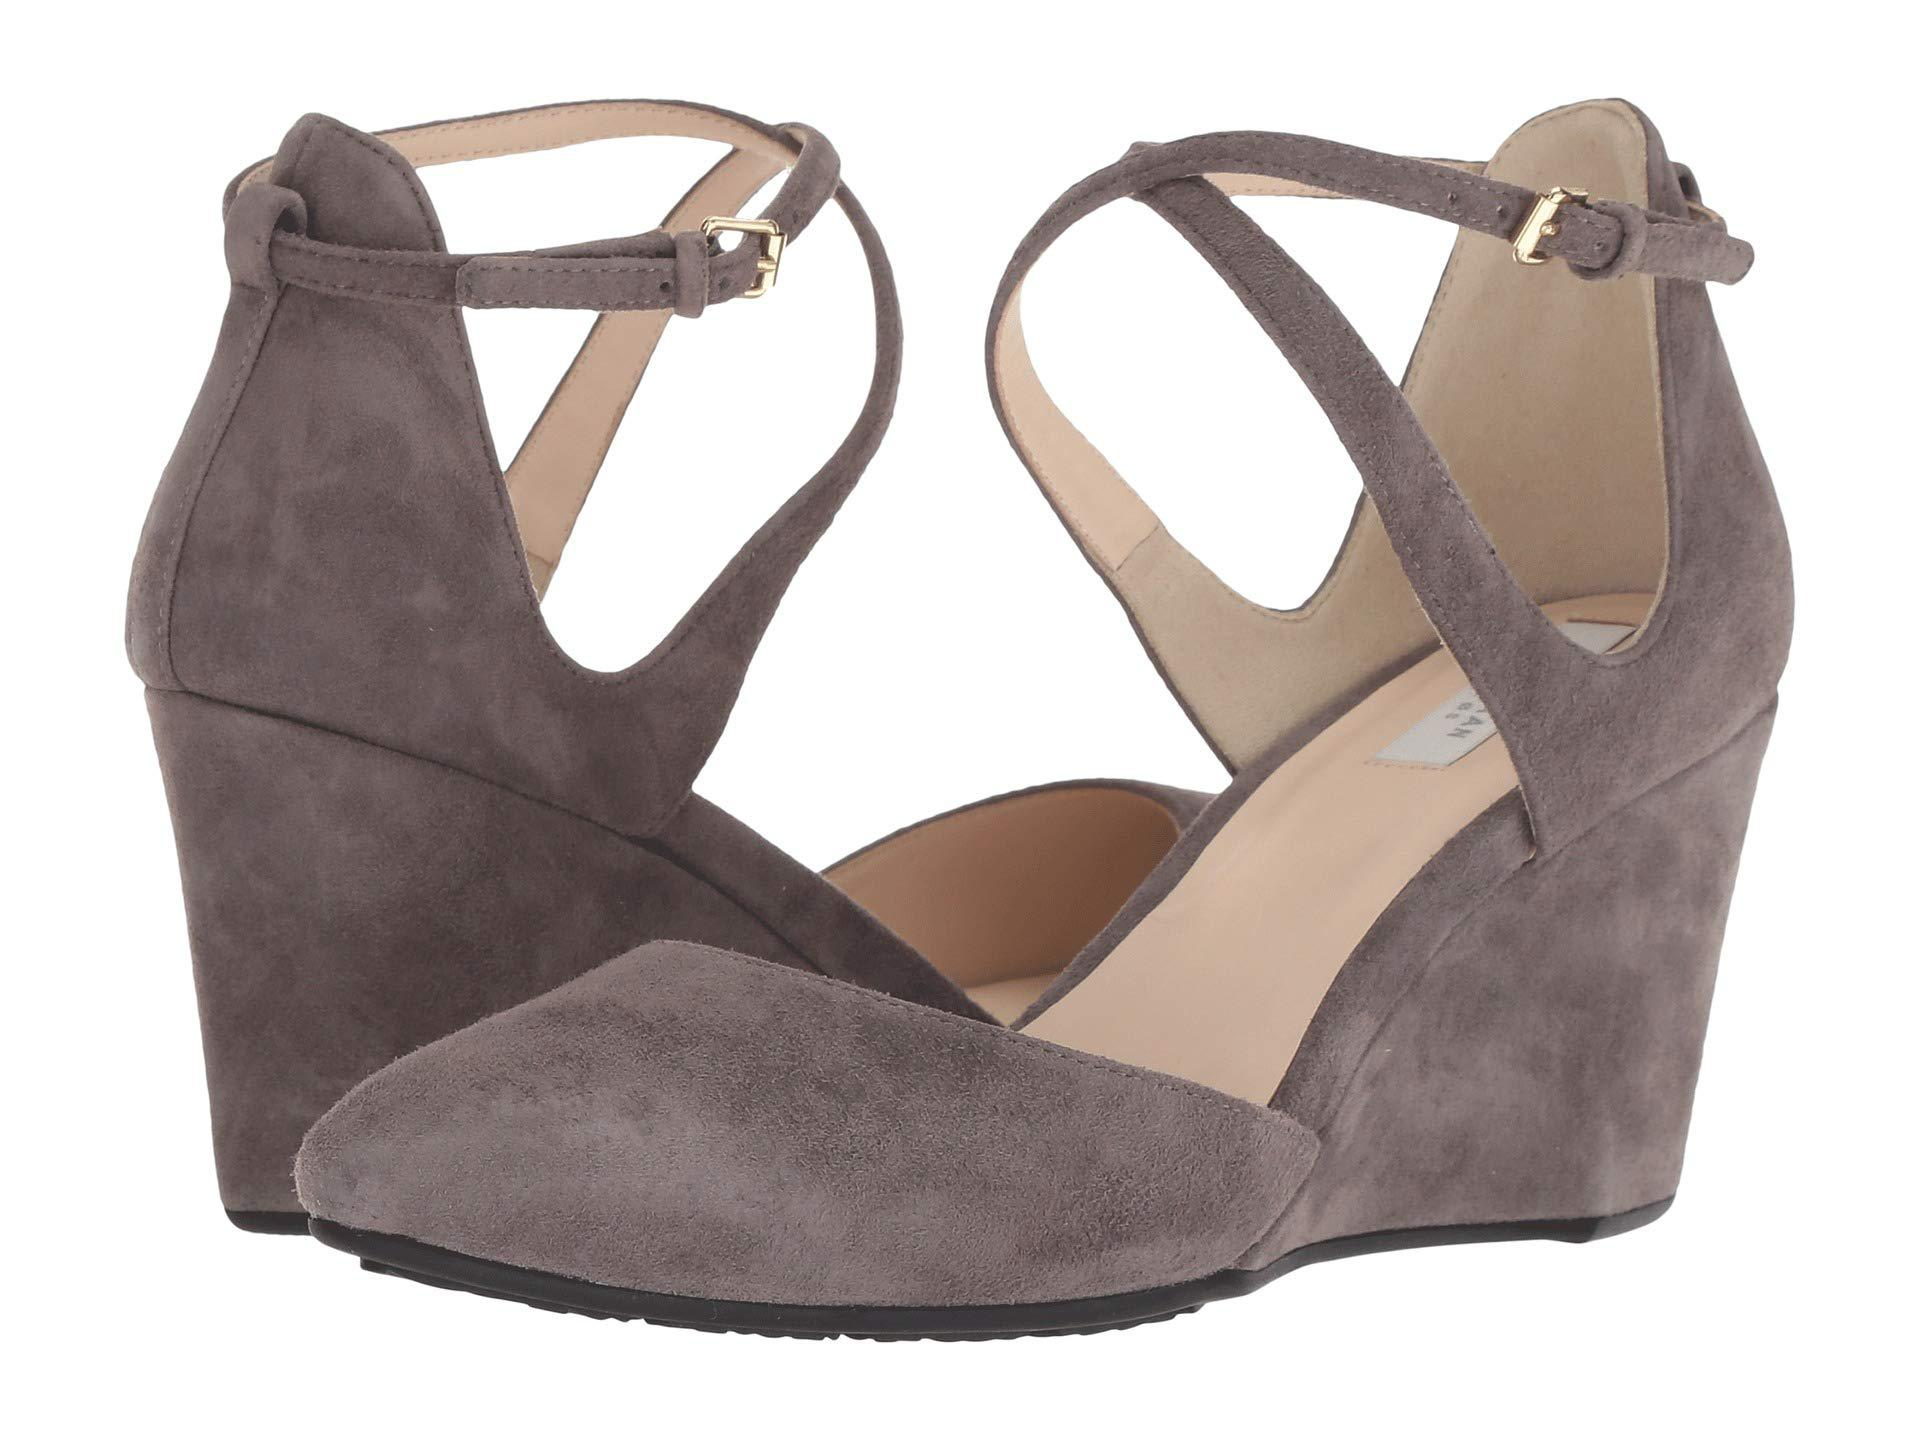 bce448acd5a5 Lyst - Cole Haan Lacey Wedge Ankle Strap 75mm - Save 45%